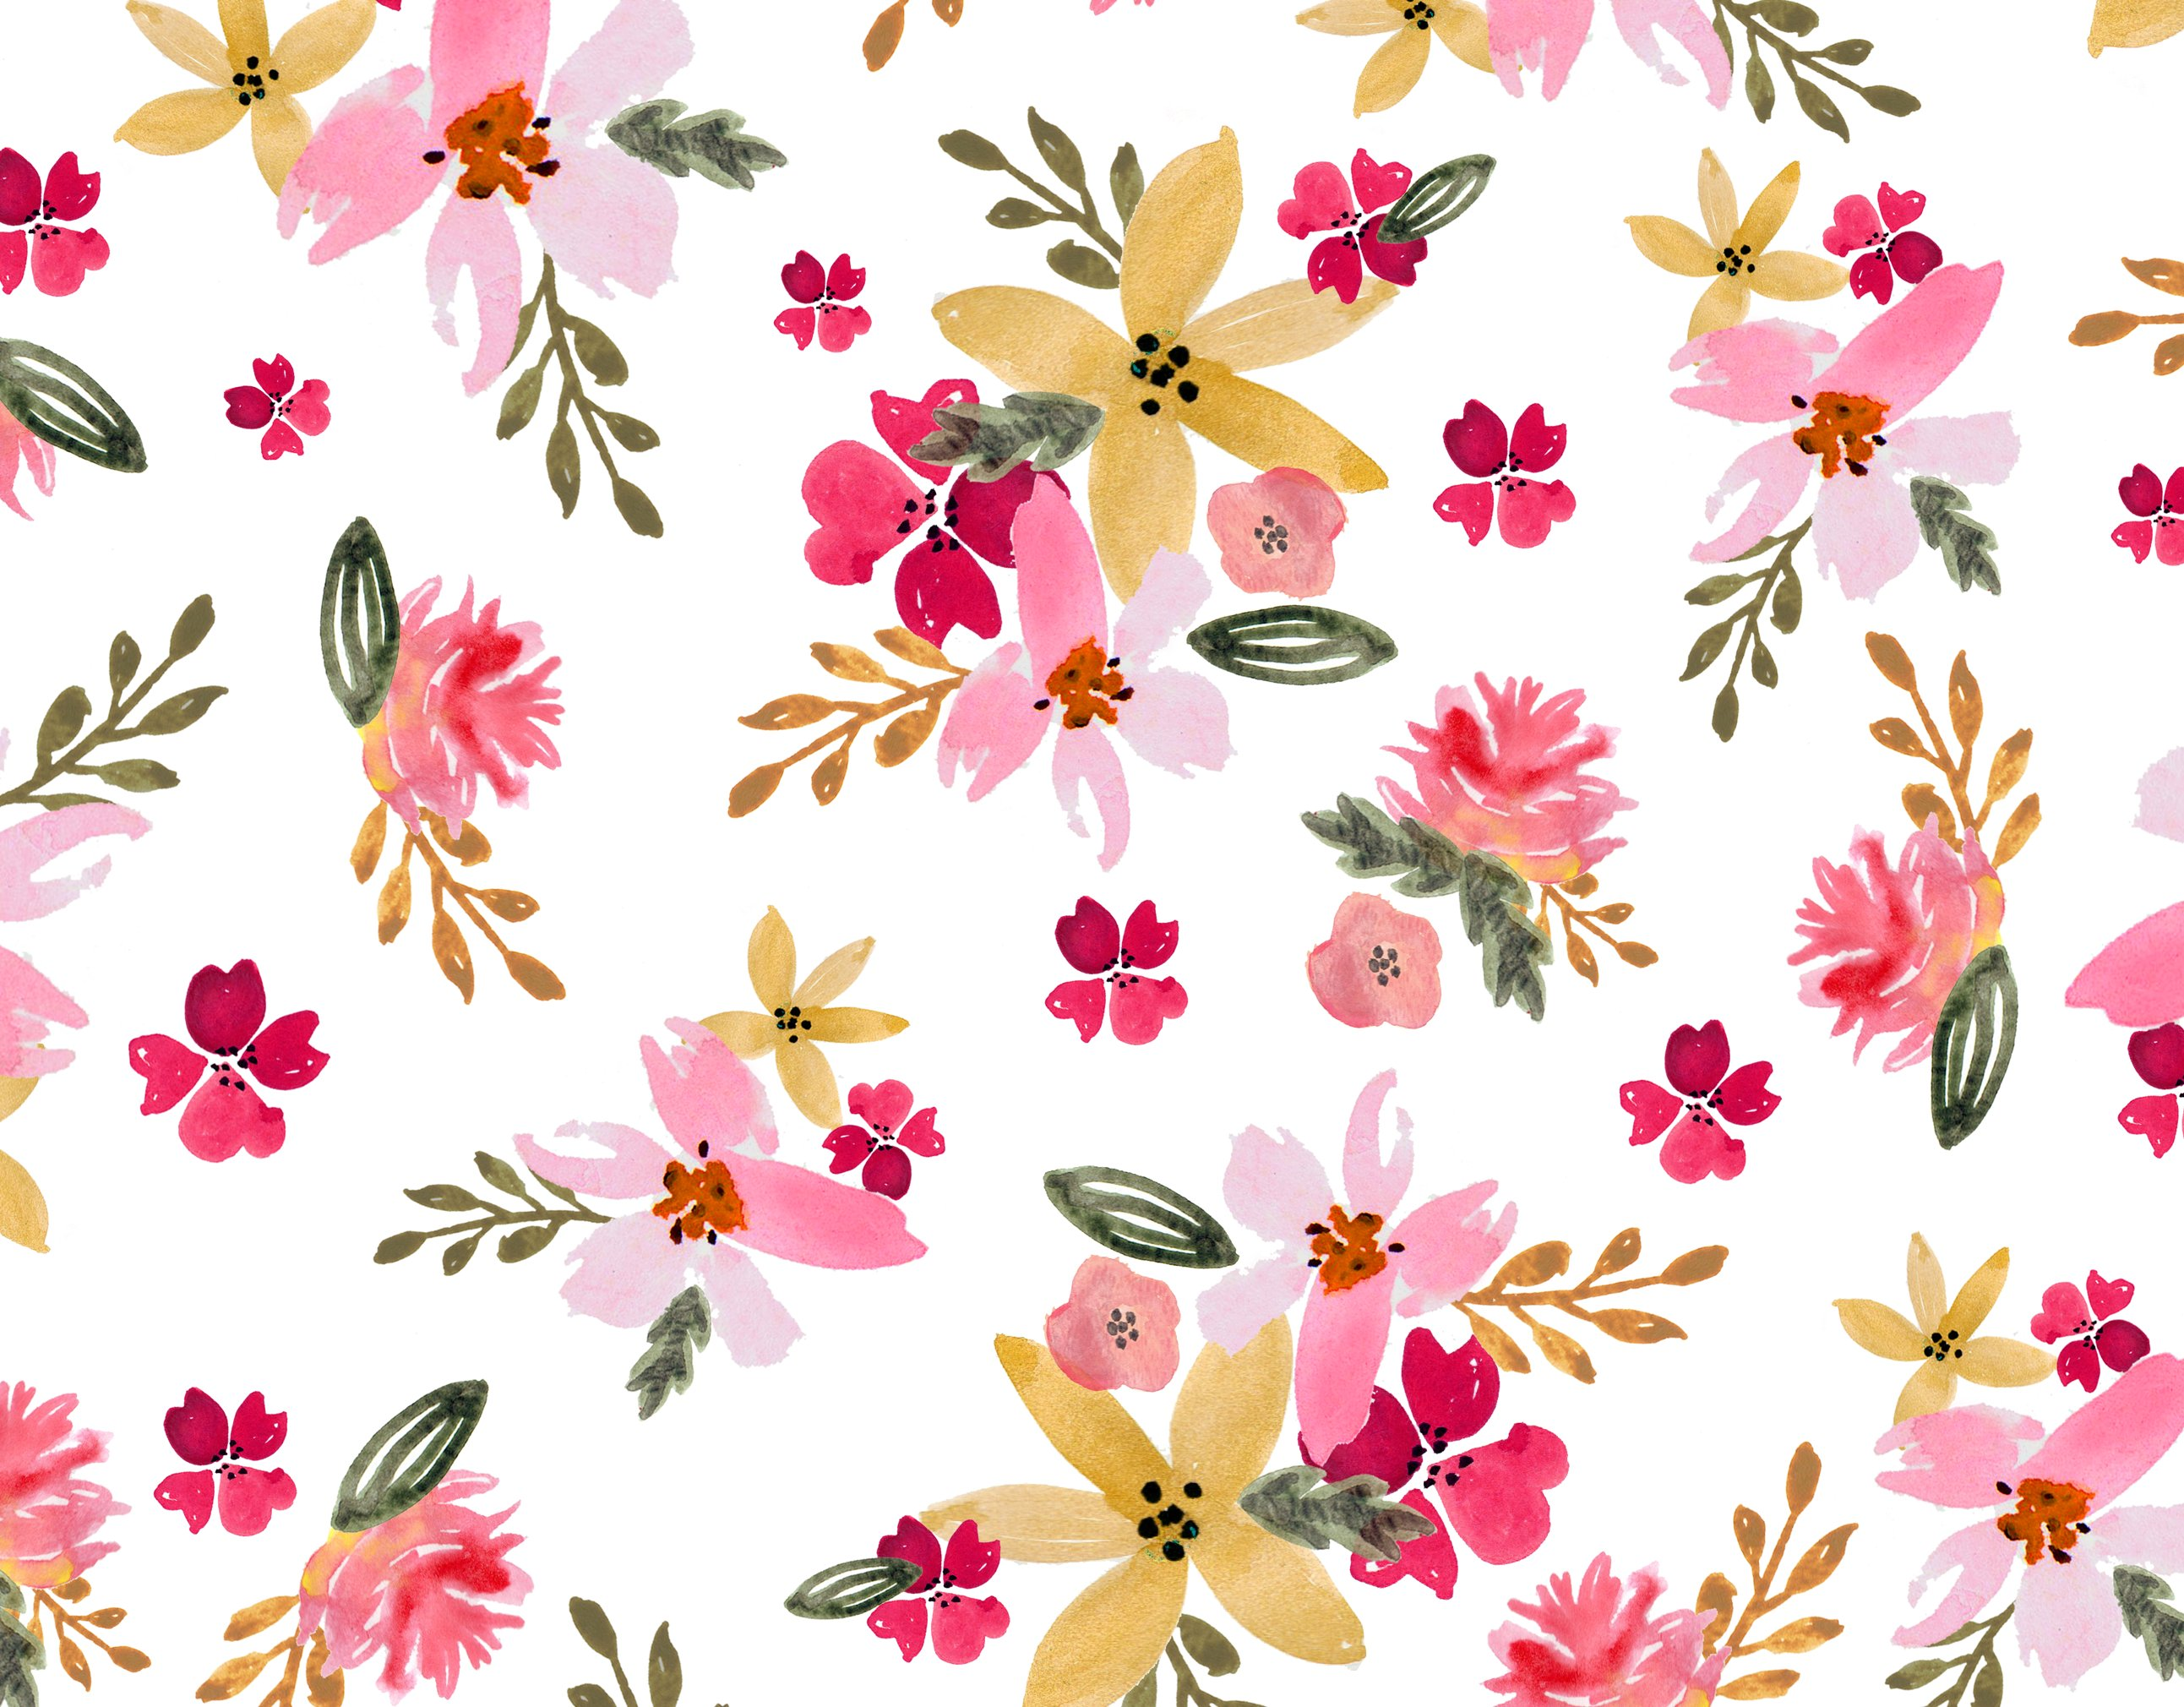 Watercolor Floral Seamless Pattern ~ Graphic Patterns ...